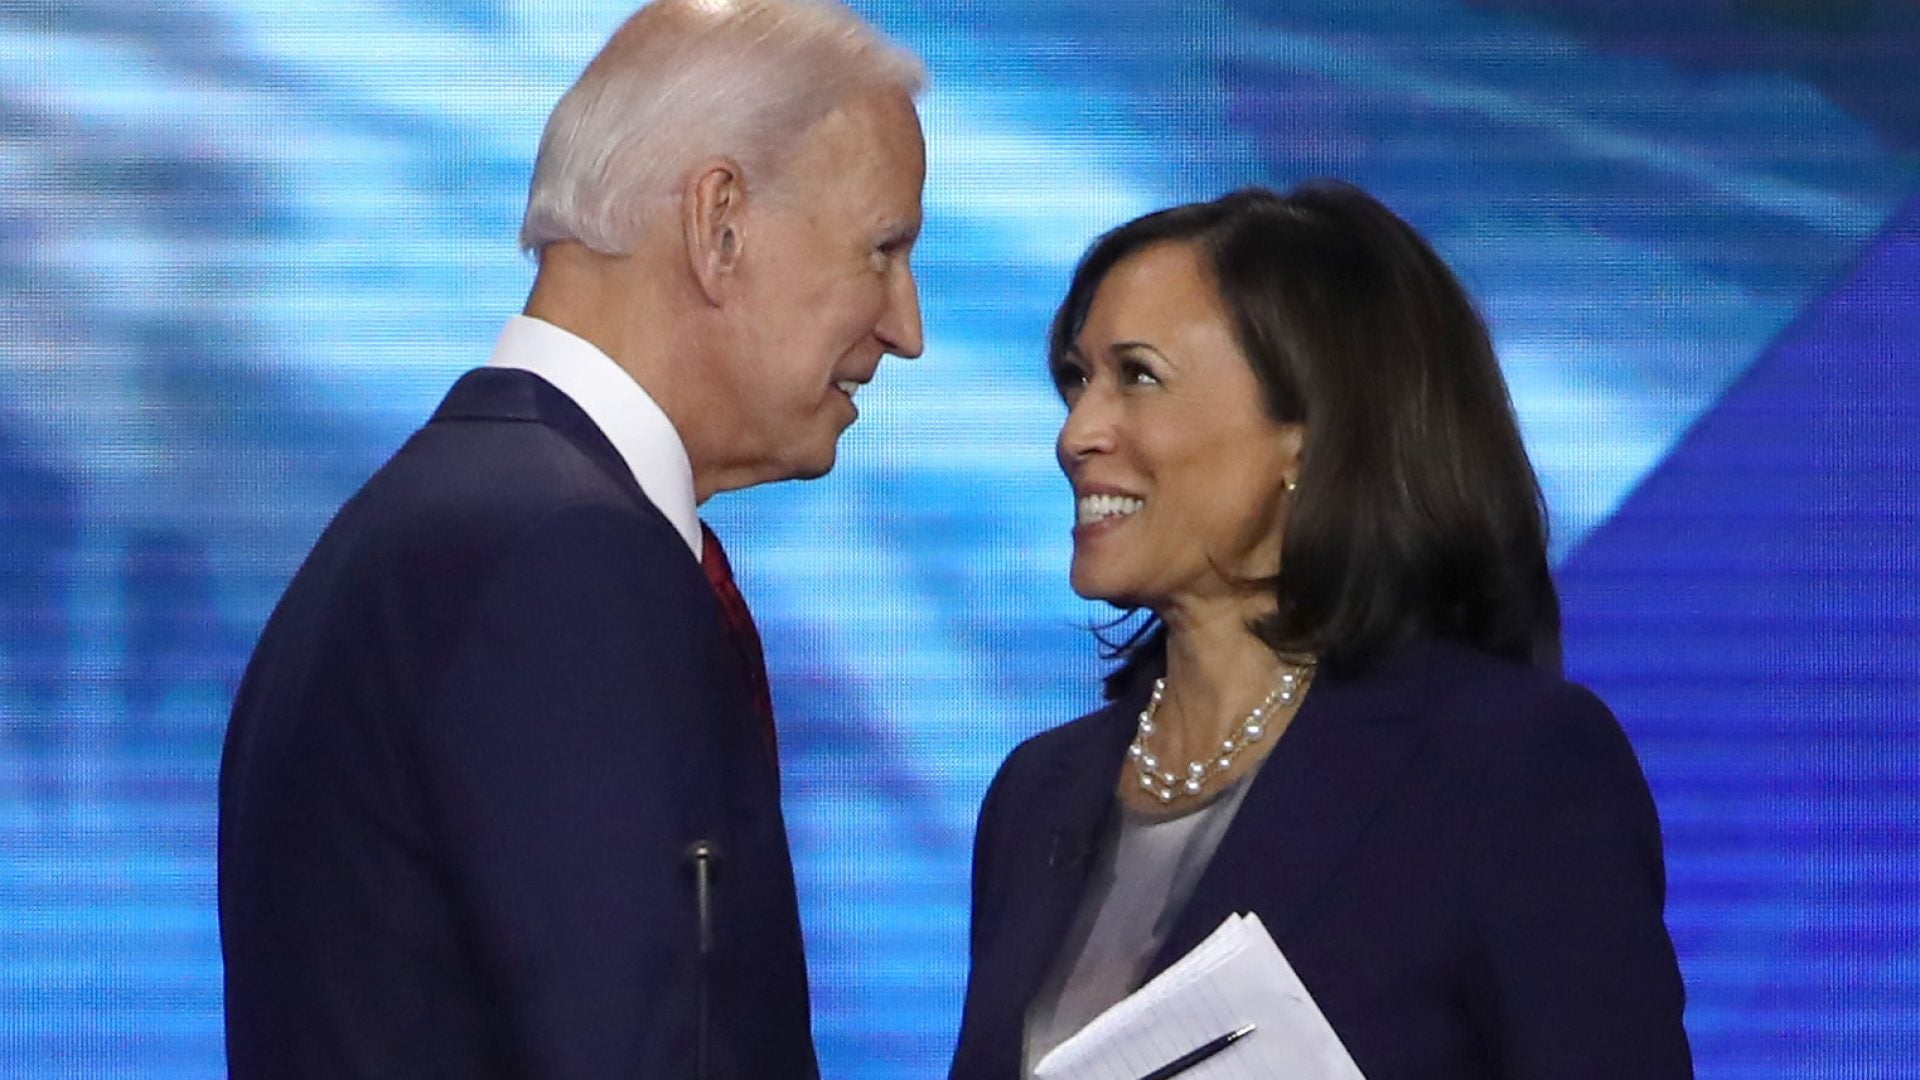 Joe Biden Reveals Four Black Women Are Being Strongly Considered As Running Mate